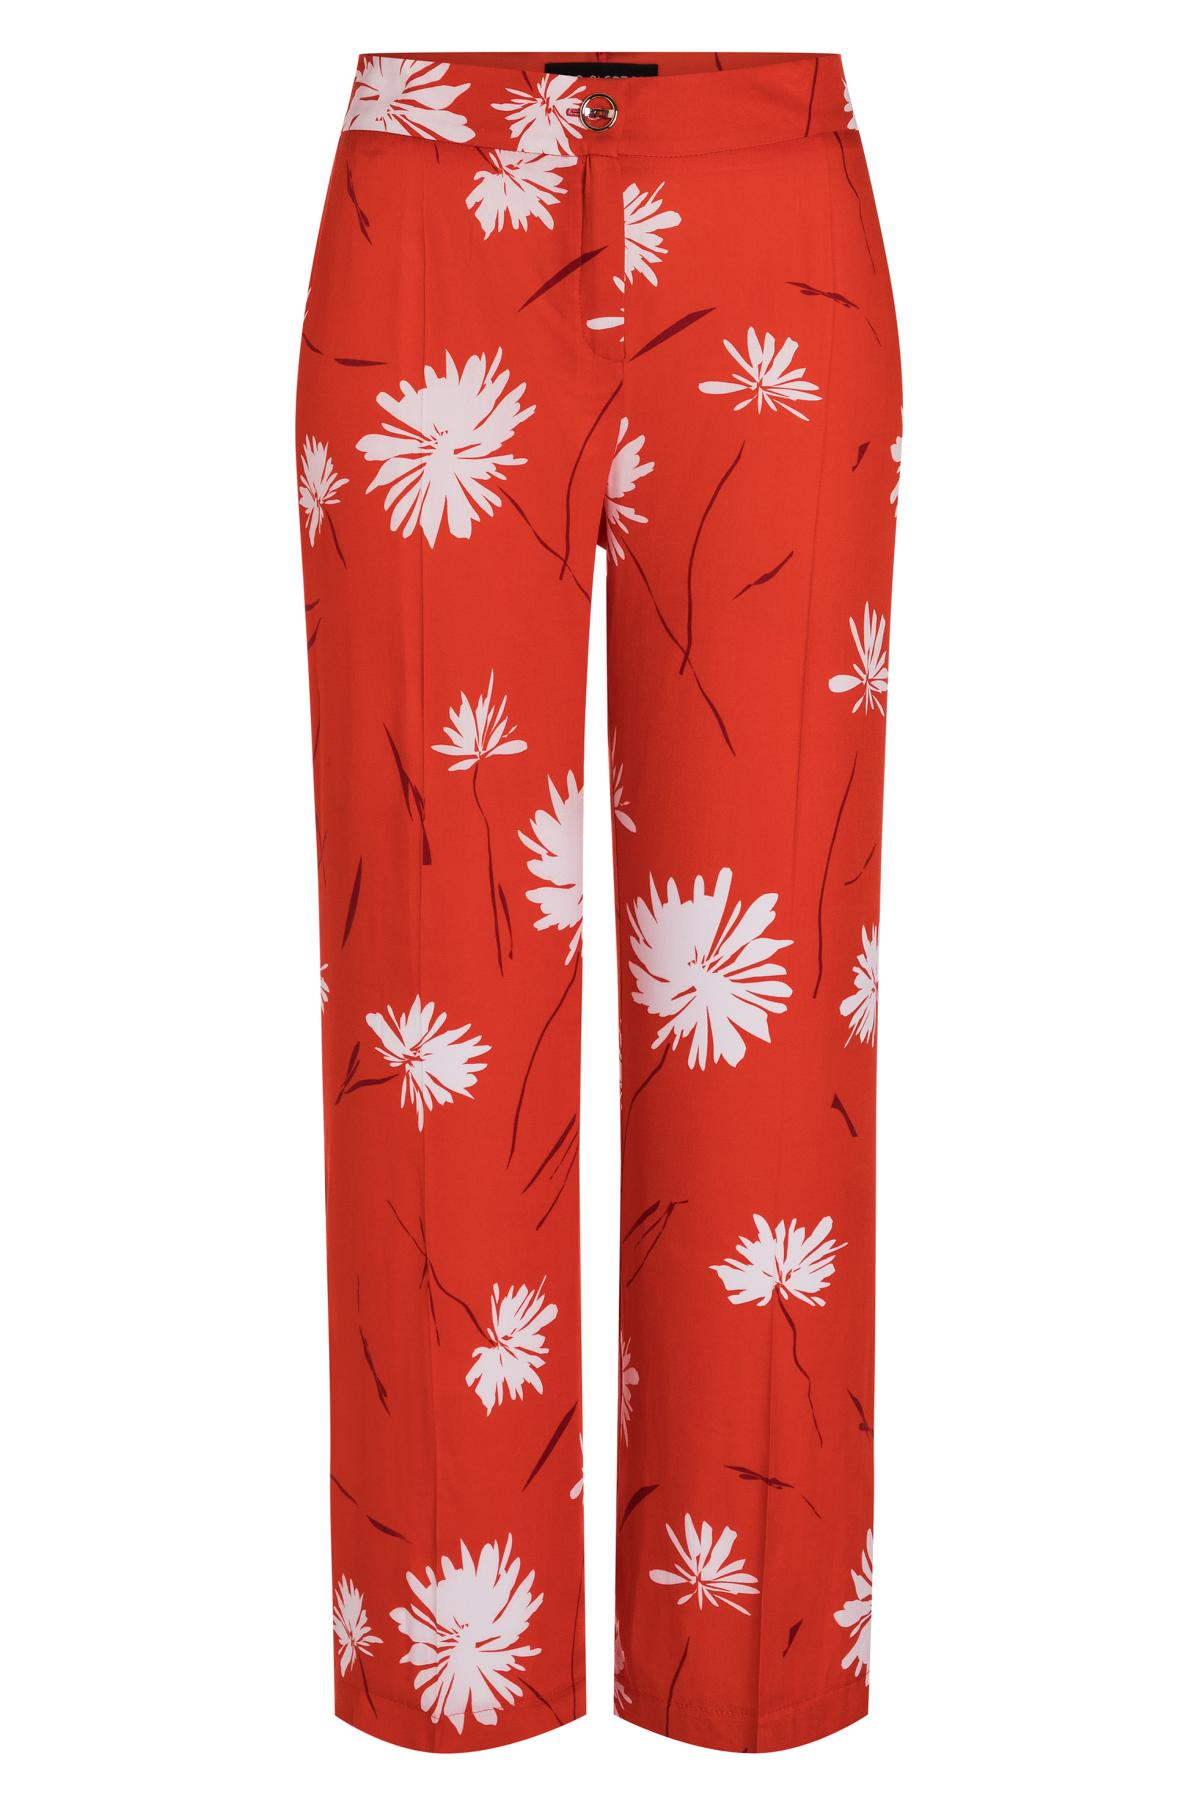 Ana Alcazar Cropped Pant Taxoppe